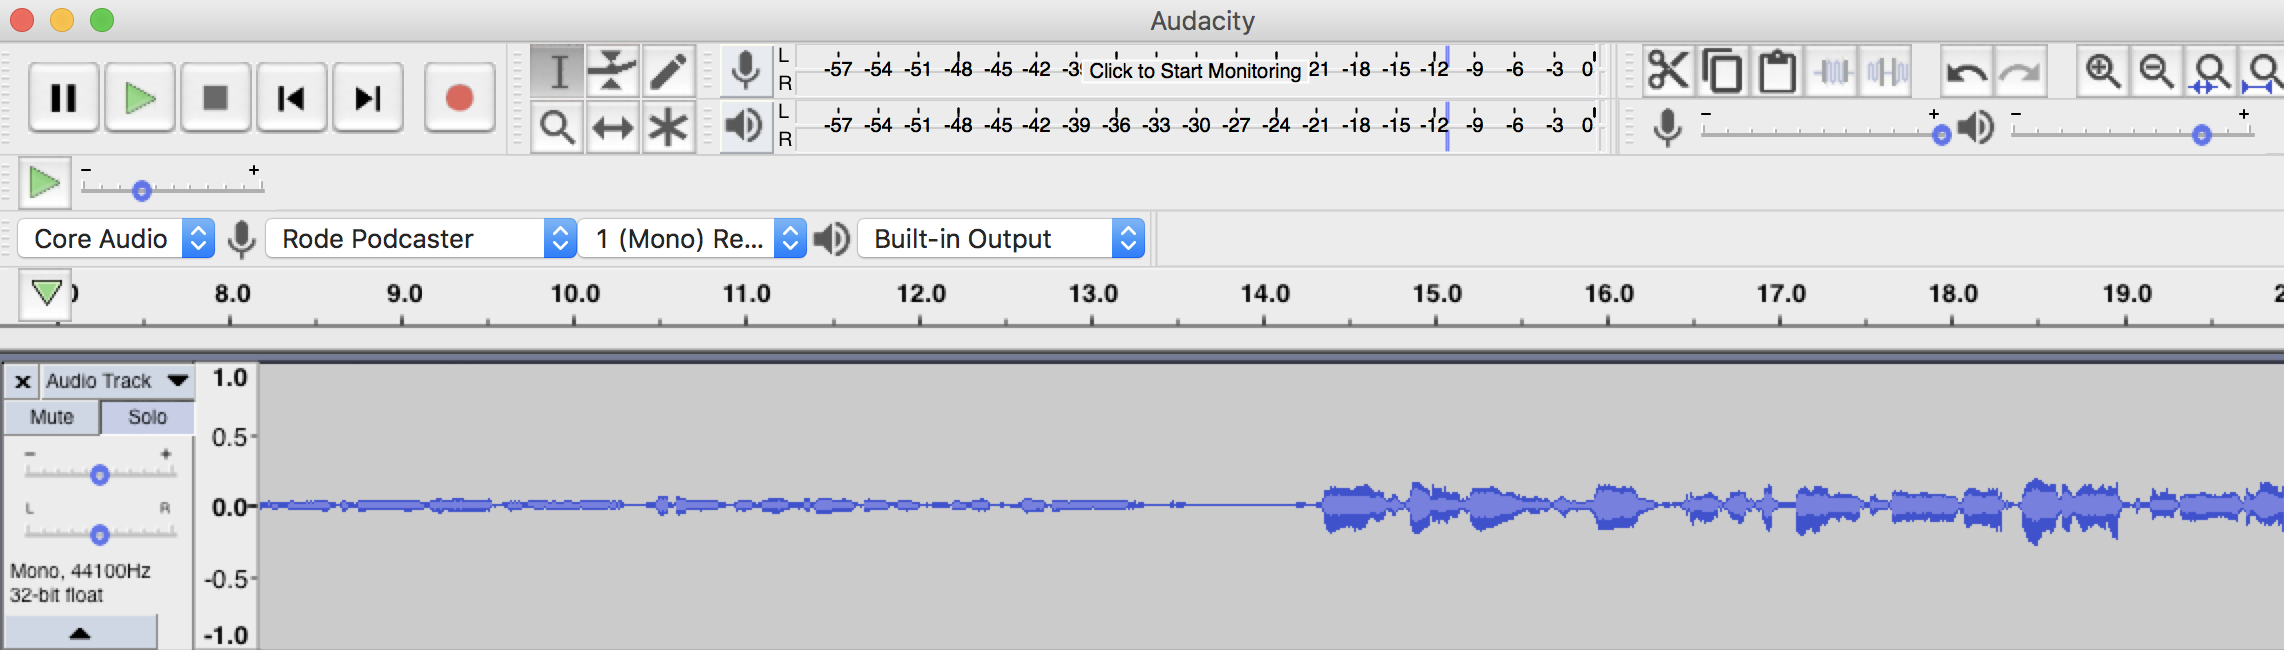 Audacity screen grab.png